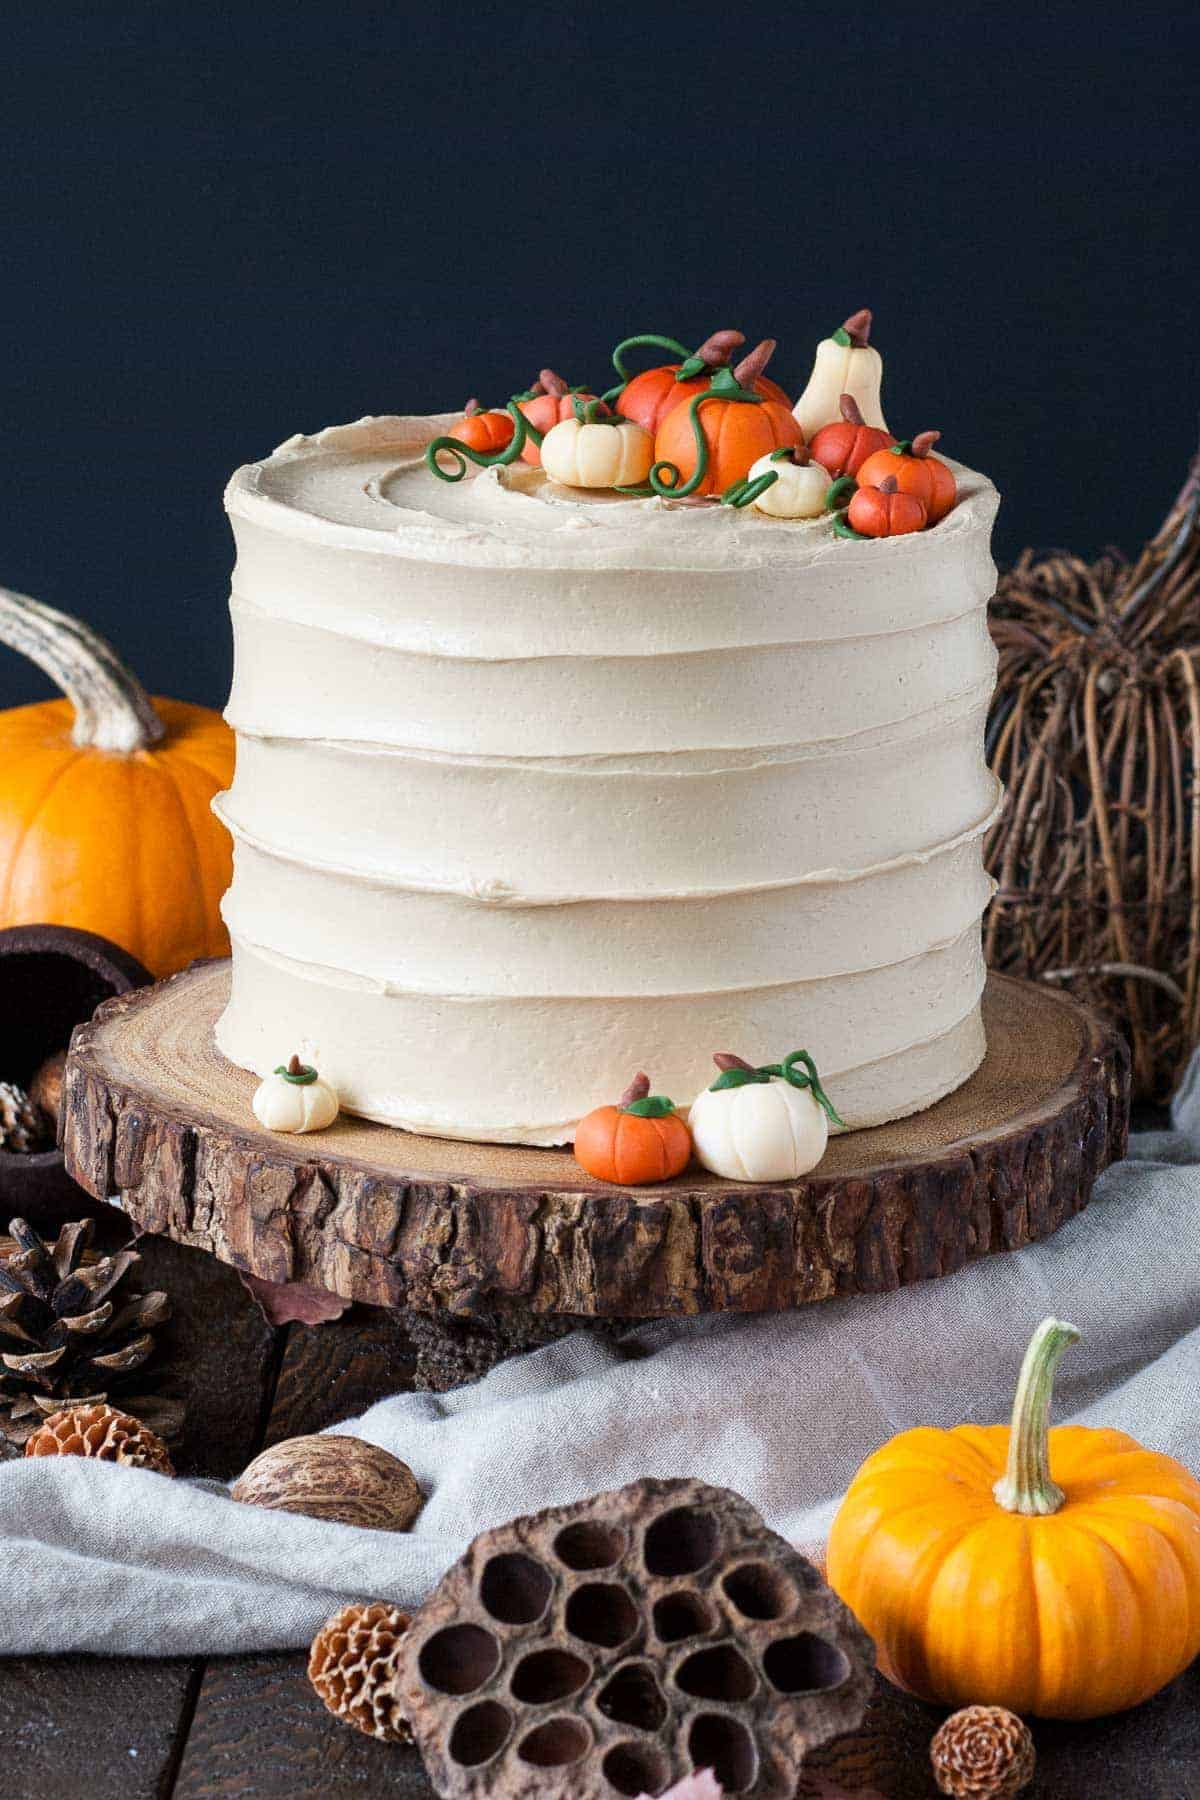 Pumpkin Spice Latte Cake by Liv for Cake | Pumpkin Spice and Everything Nice: Pumpkin Spice Recipes for Fall